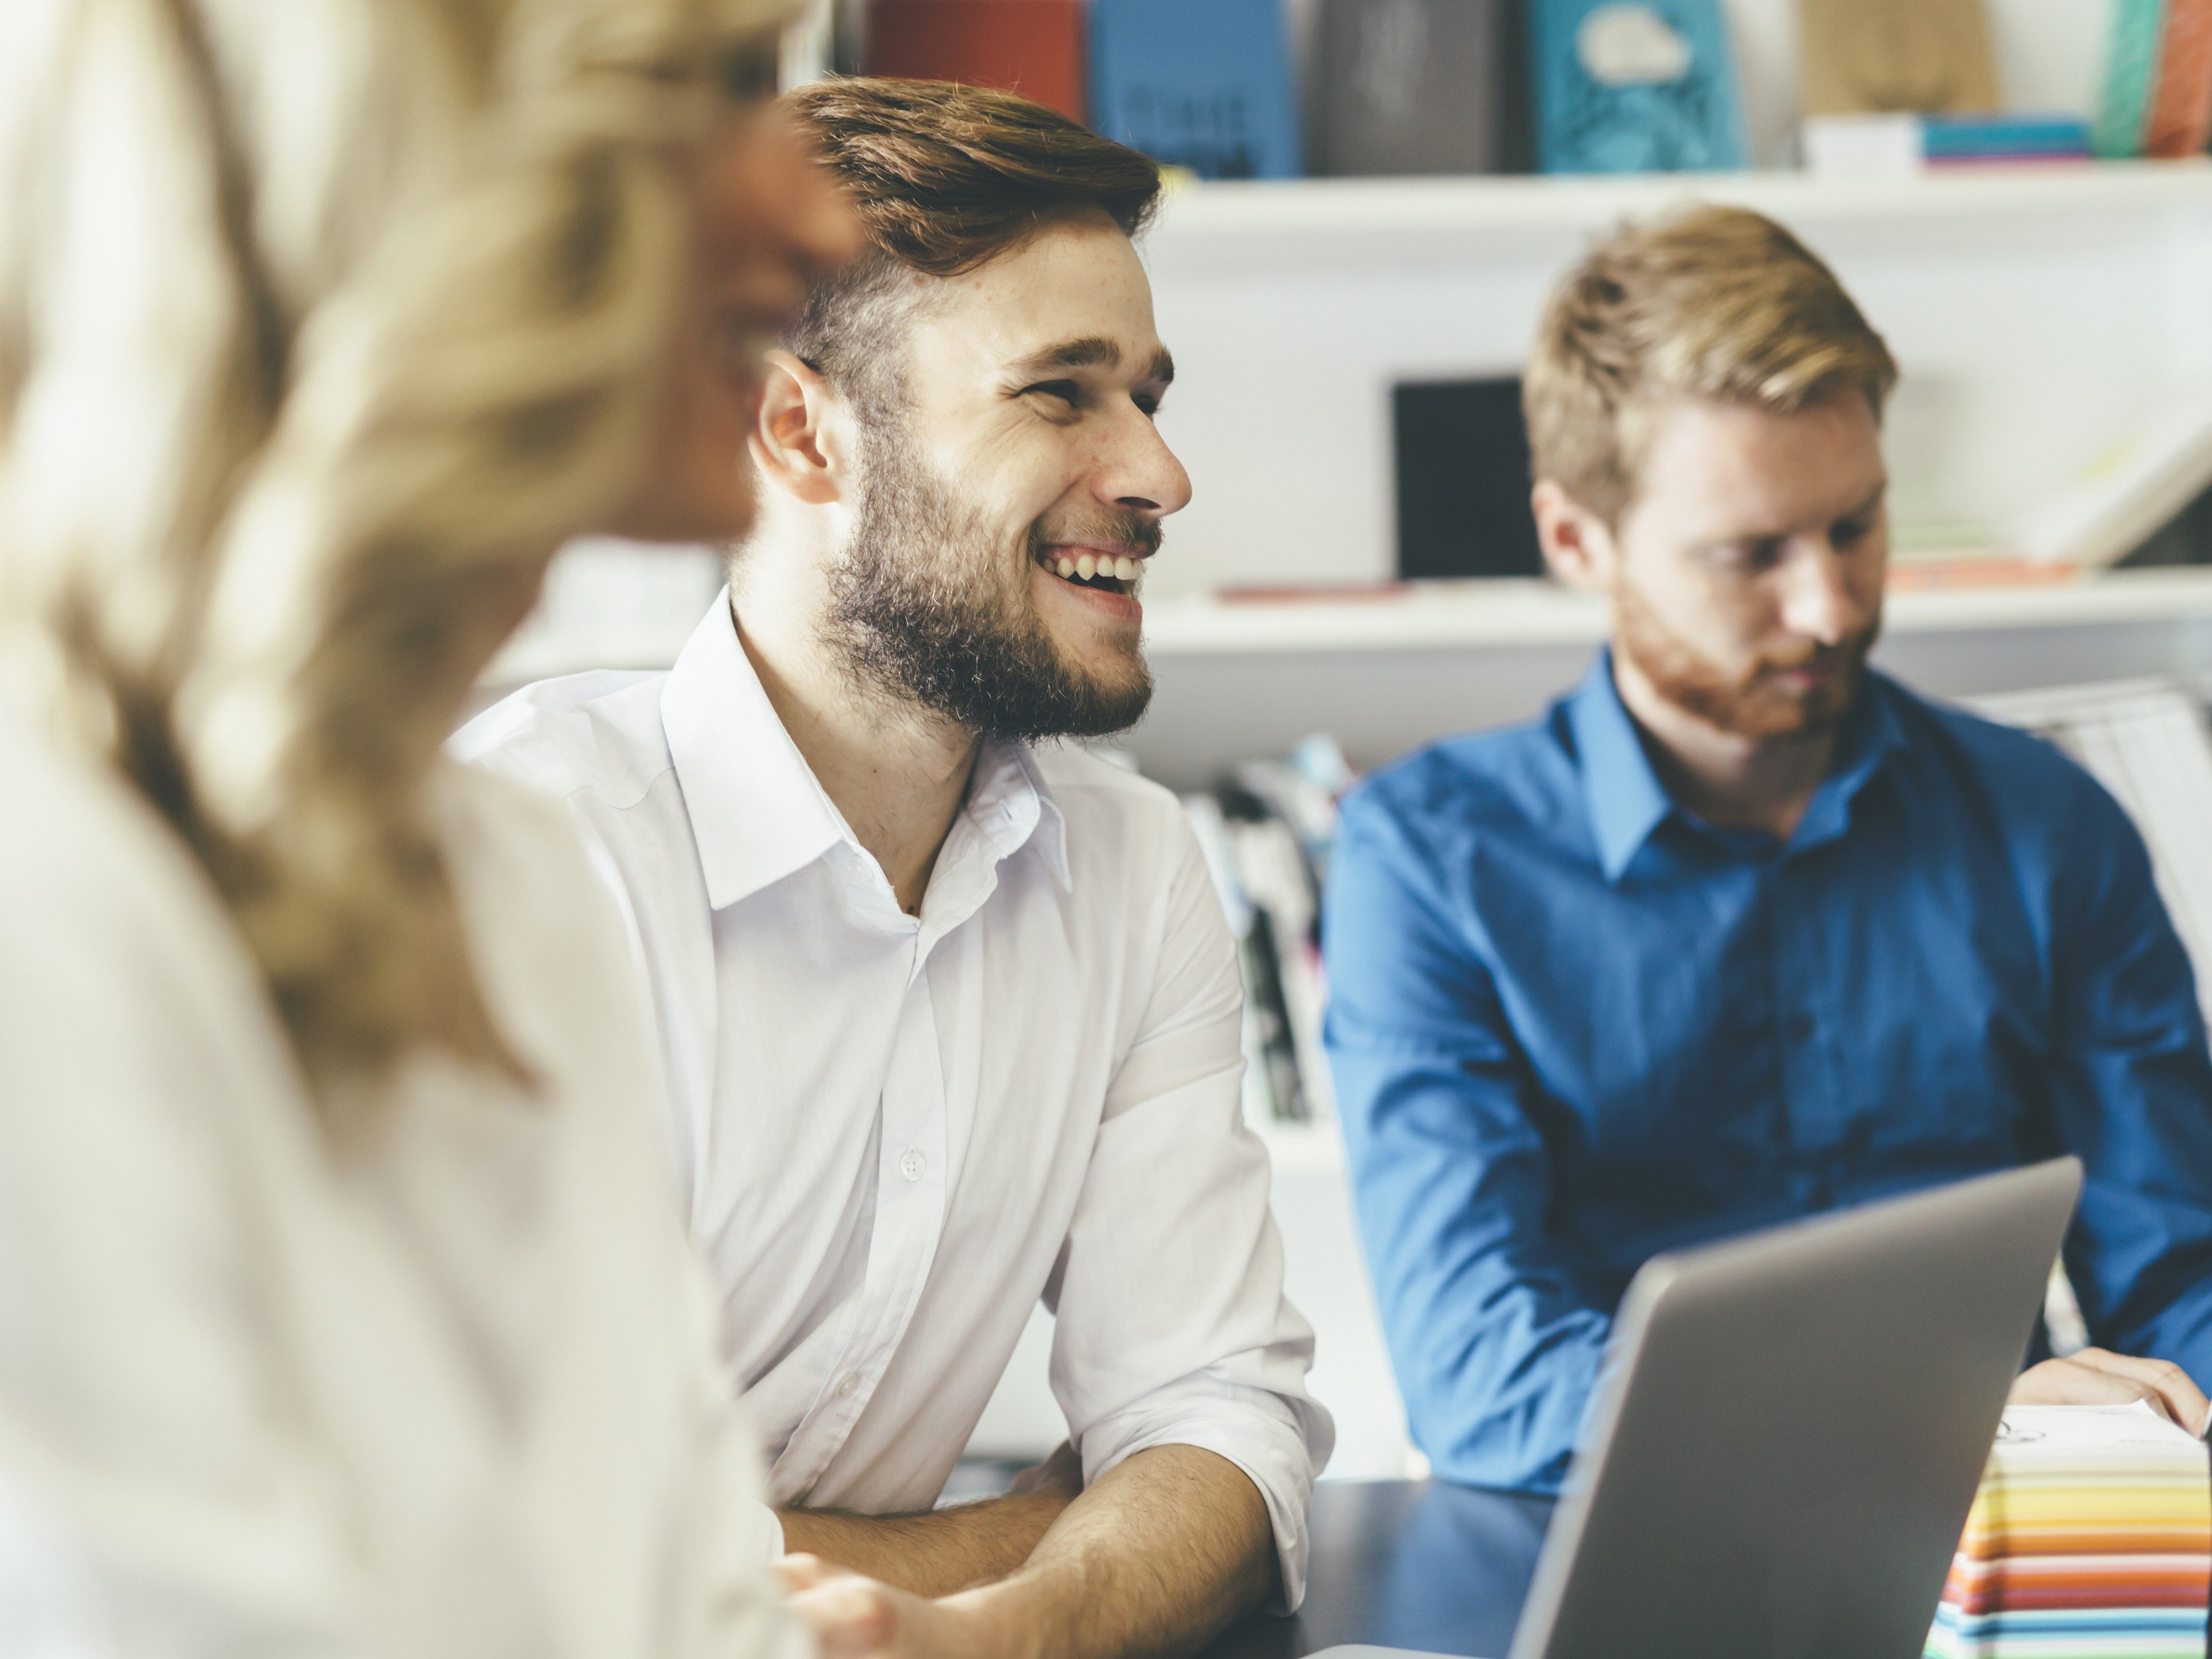 2. Engage Your Colleagues in Small Talk